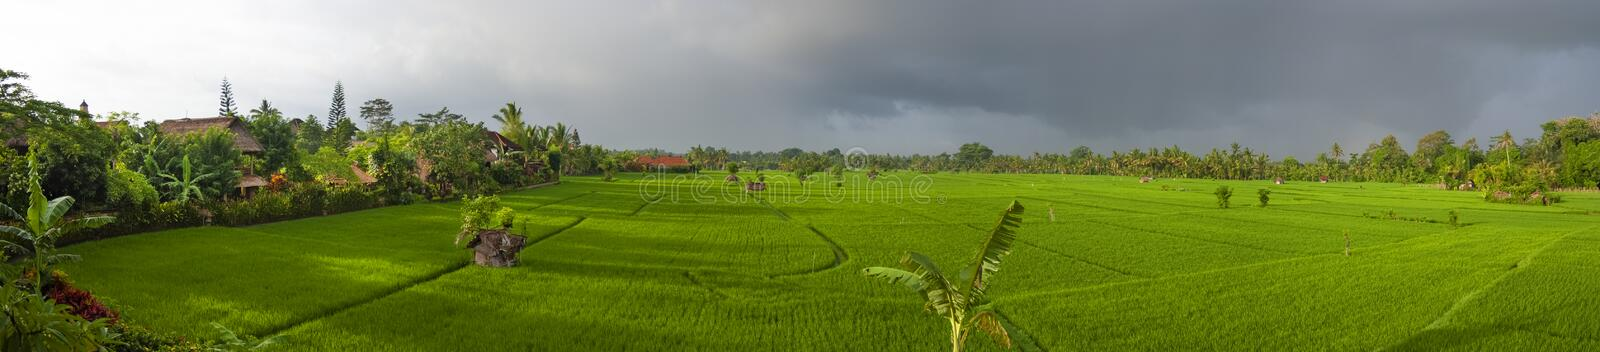 Panoramic View of an Ubud, Bali, Rice Field Before a Rain Storm. royalty free stock photo